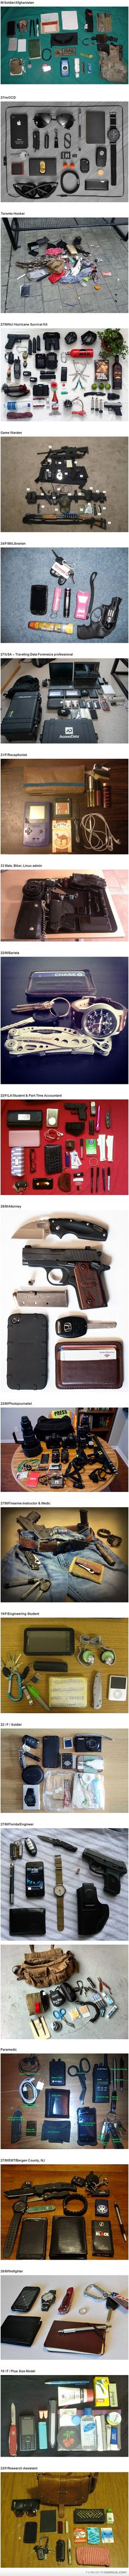 Things People Carry